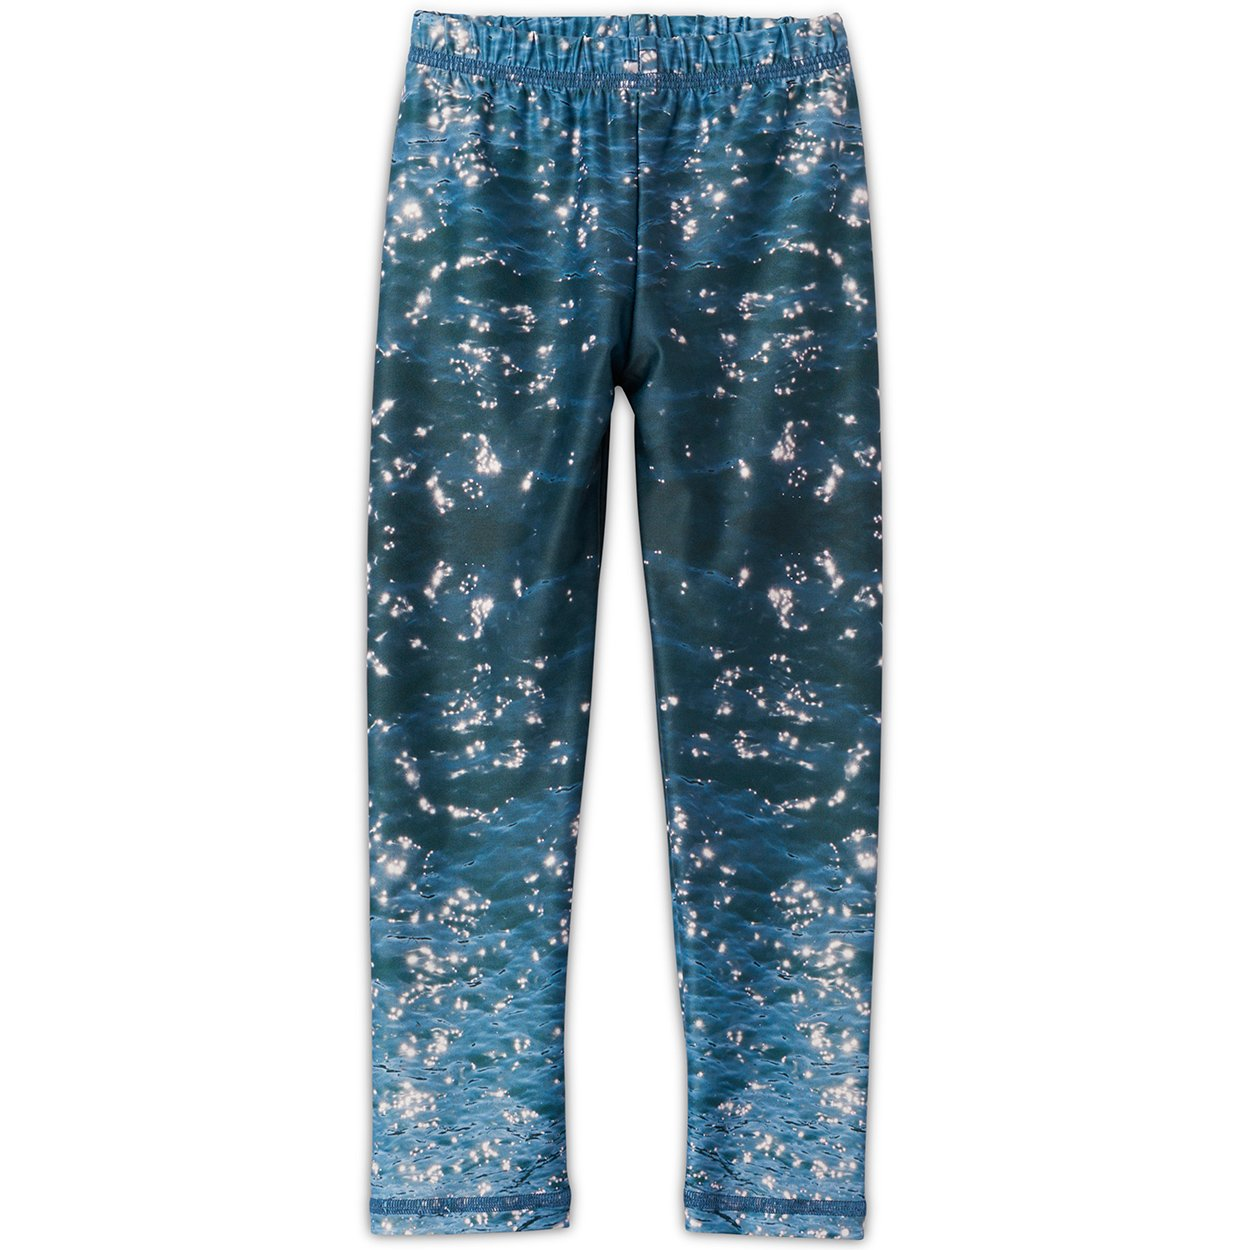 Ocean Photo (Shark) Leggings UPF 50+